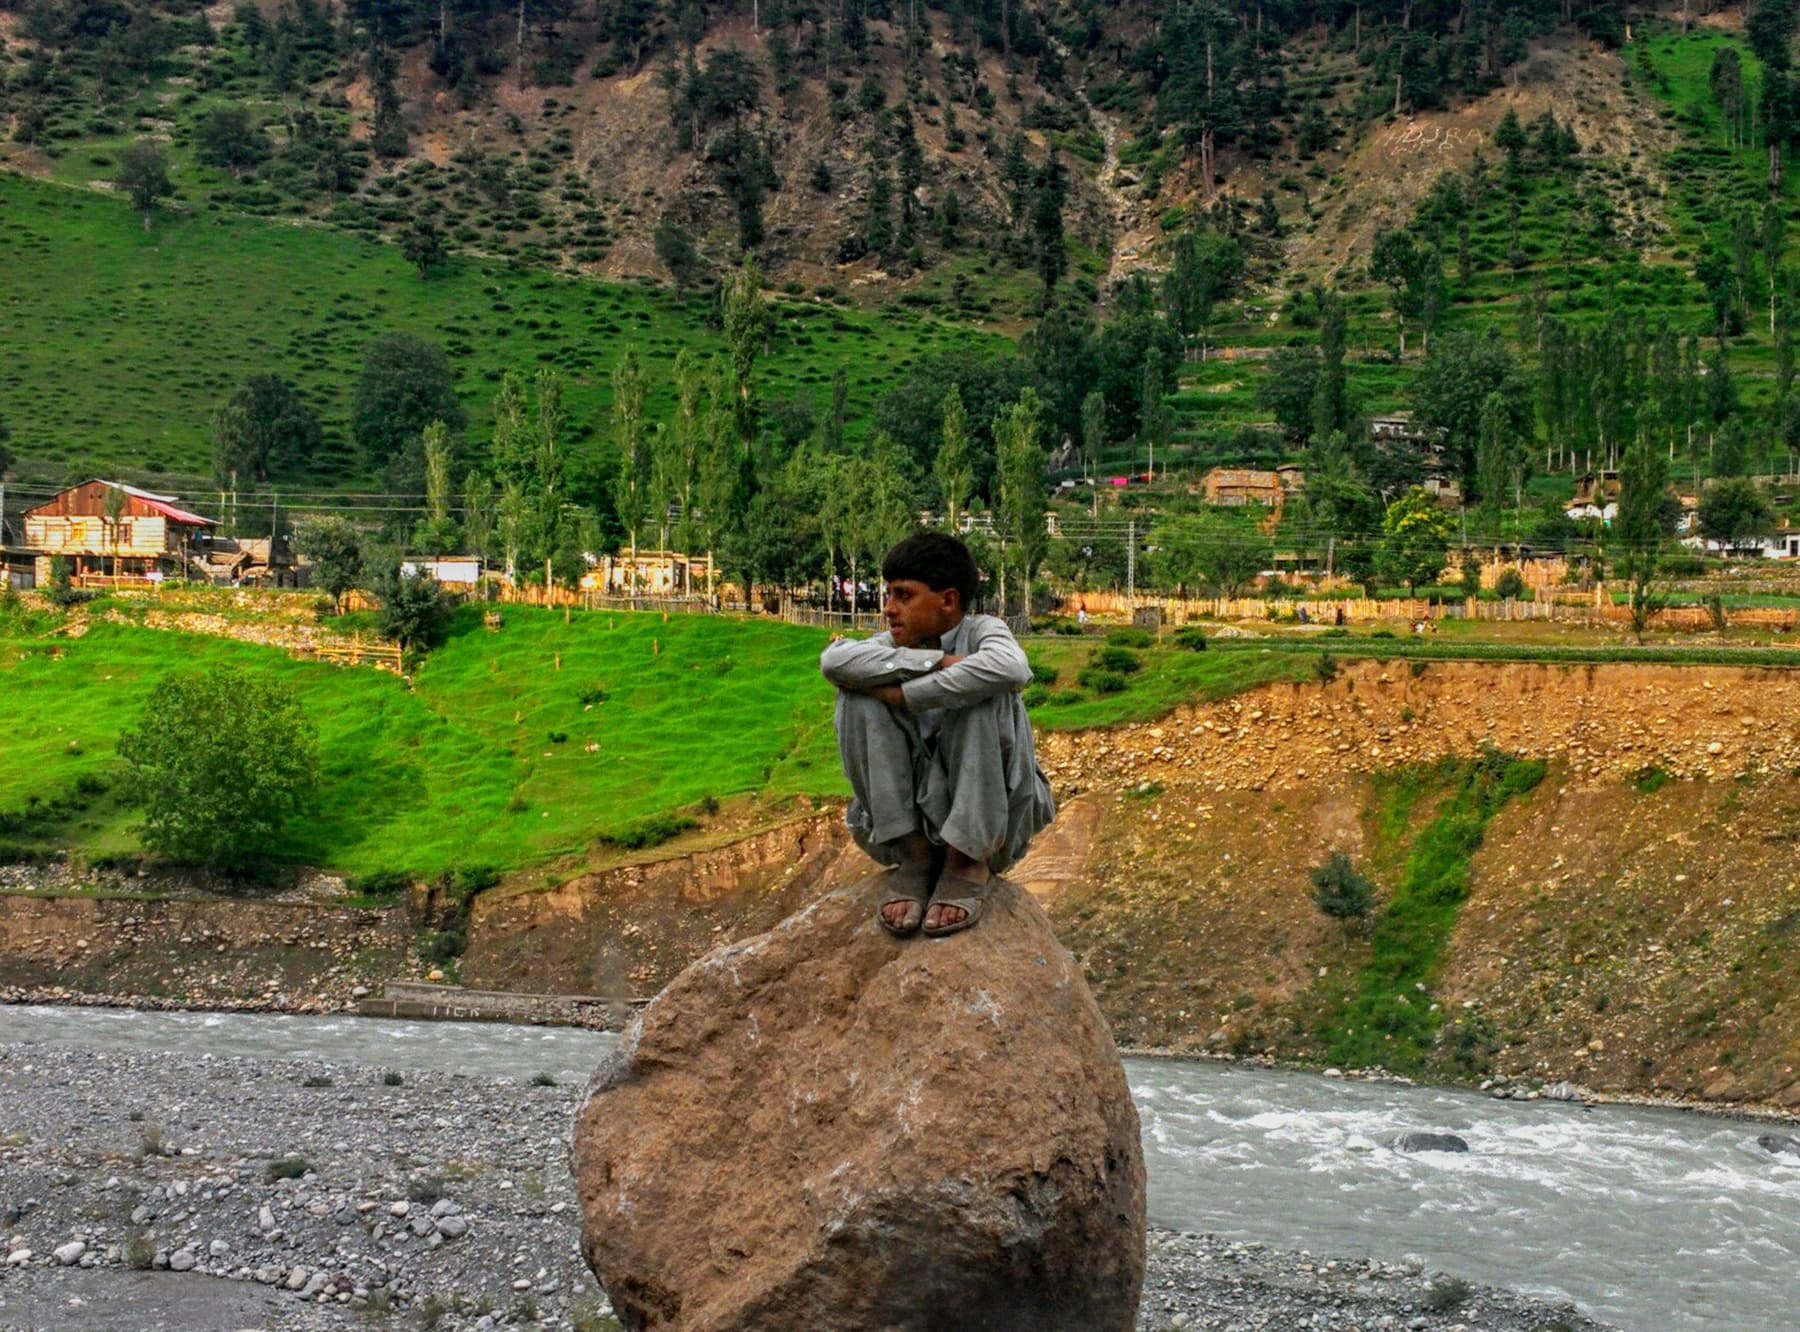 A boy sitting on a rock by his lonesome.